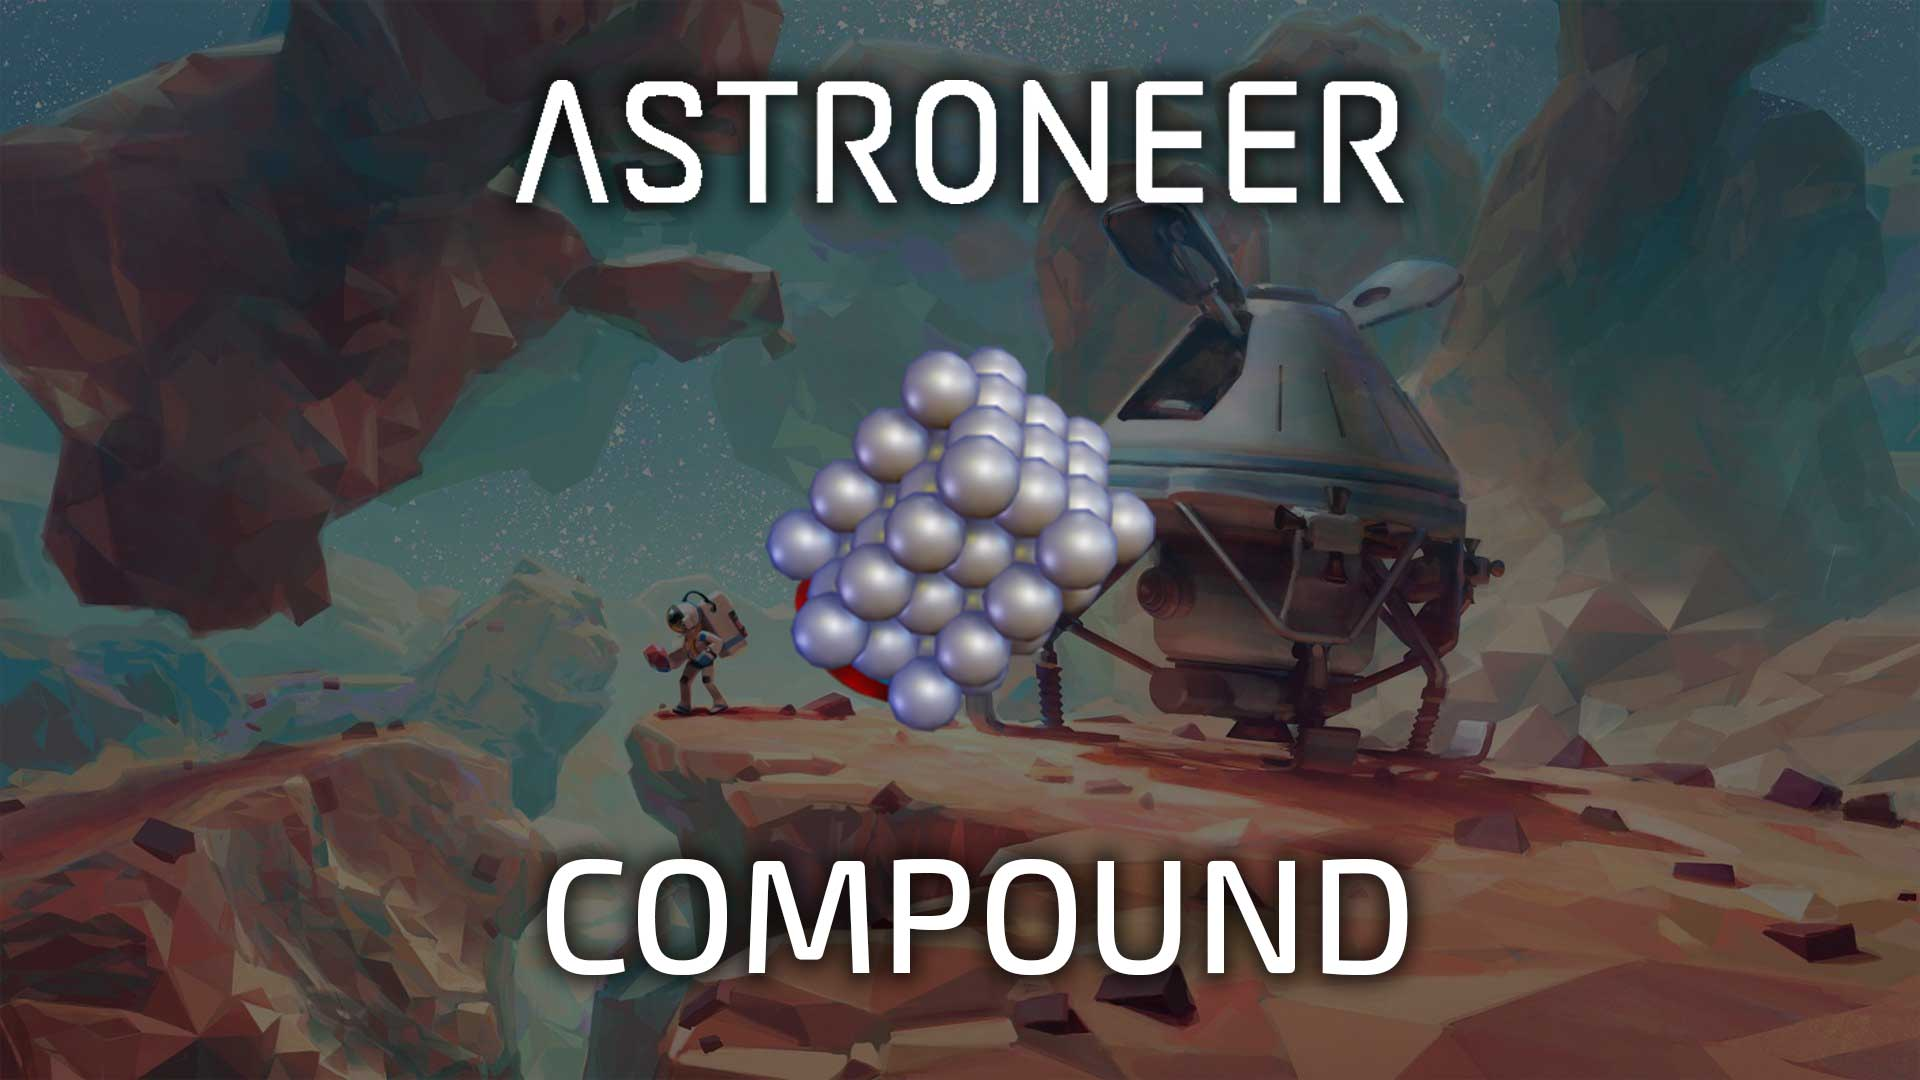 astroneer compound